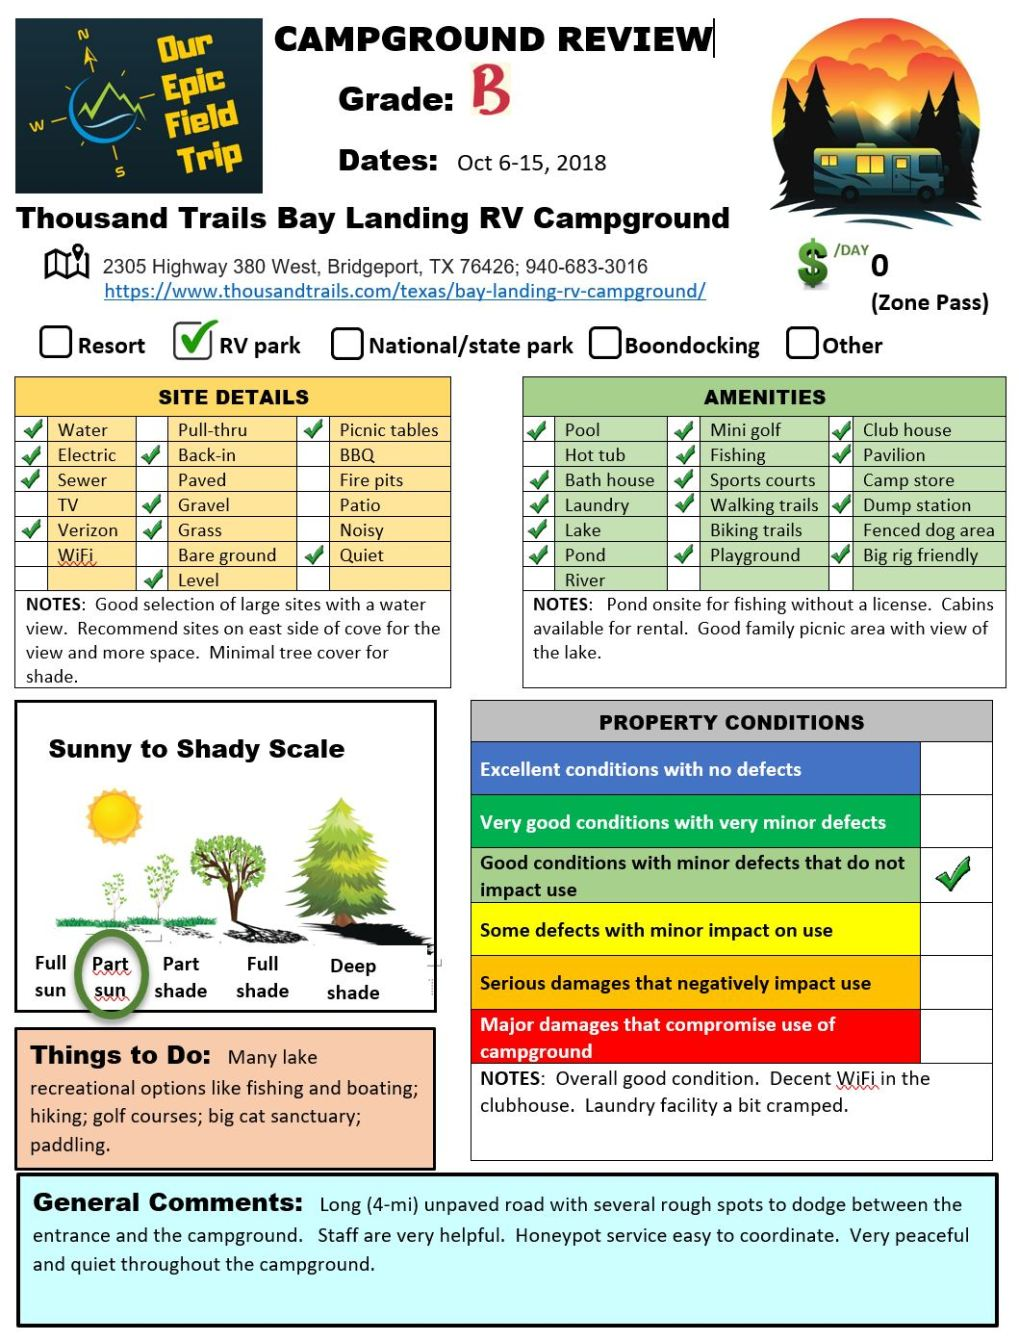 Campground Review - TX - Thousand Trails Bay Landing-Bridgeport